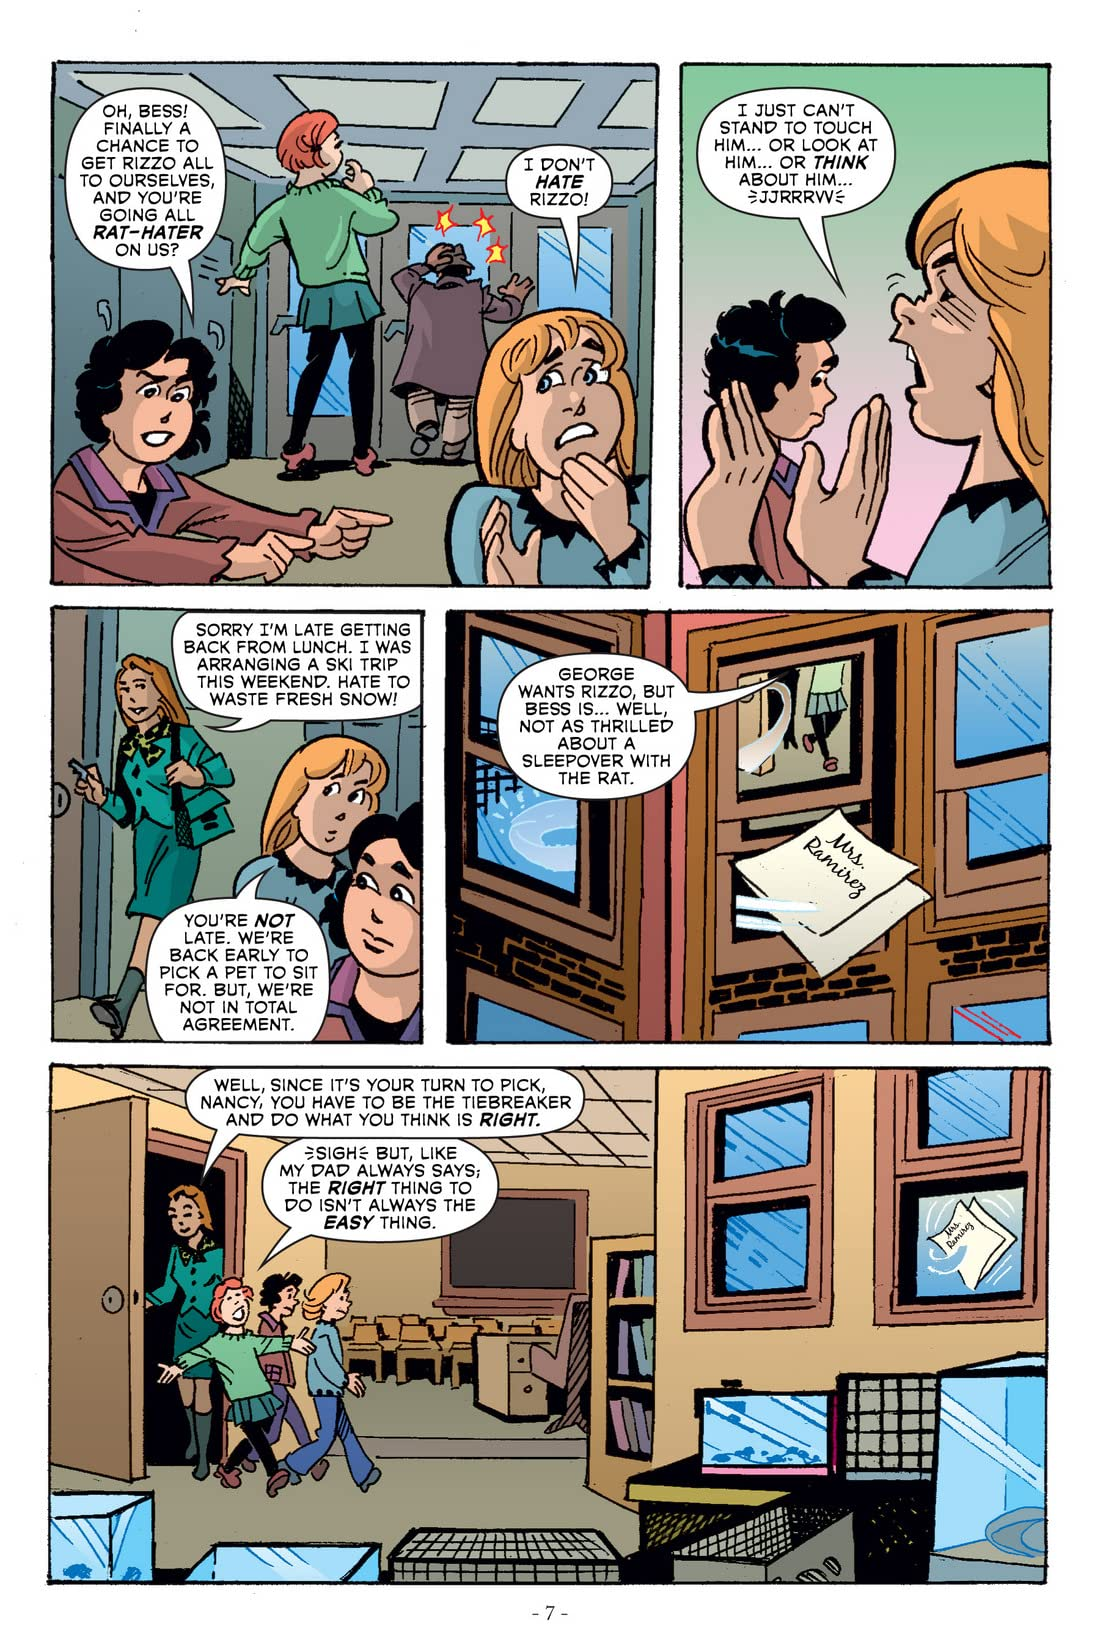 Nancy Drew & The Clue Crew Vol. 3: Enter The Dragon Mystery Preview